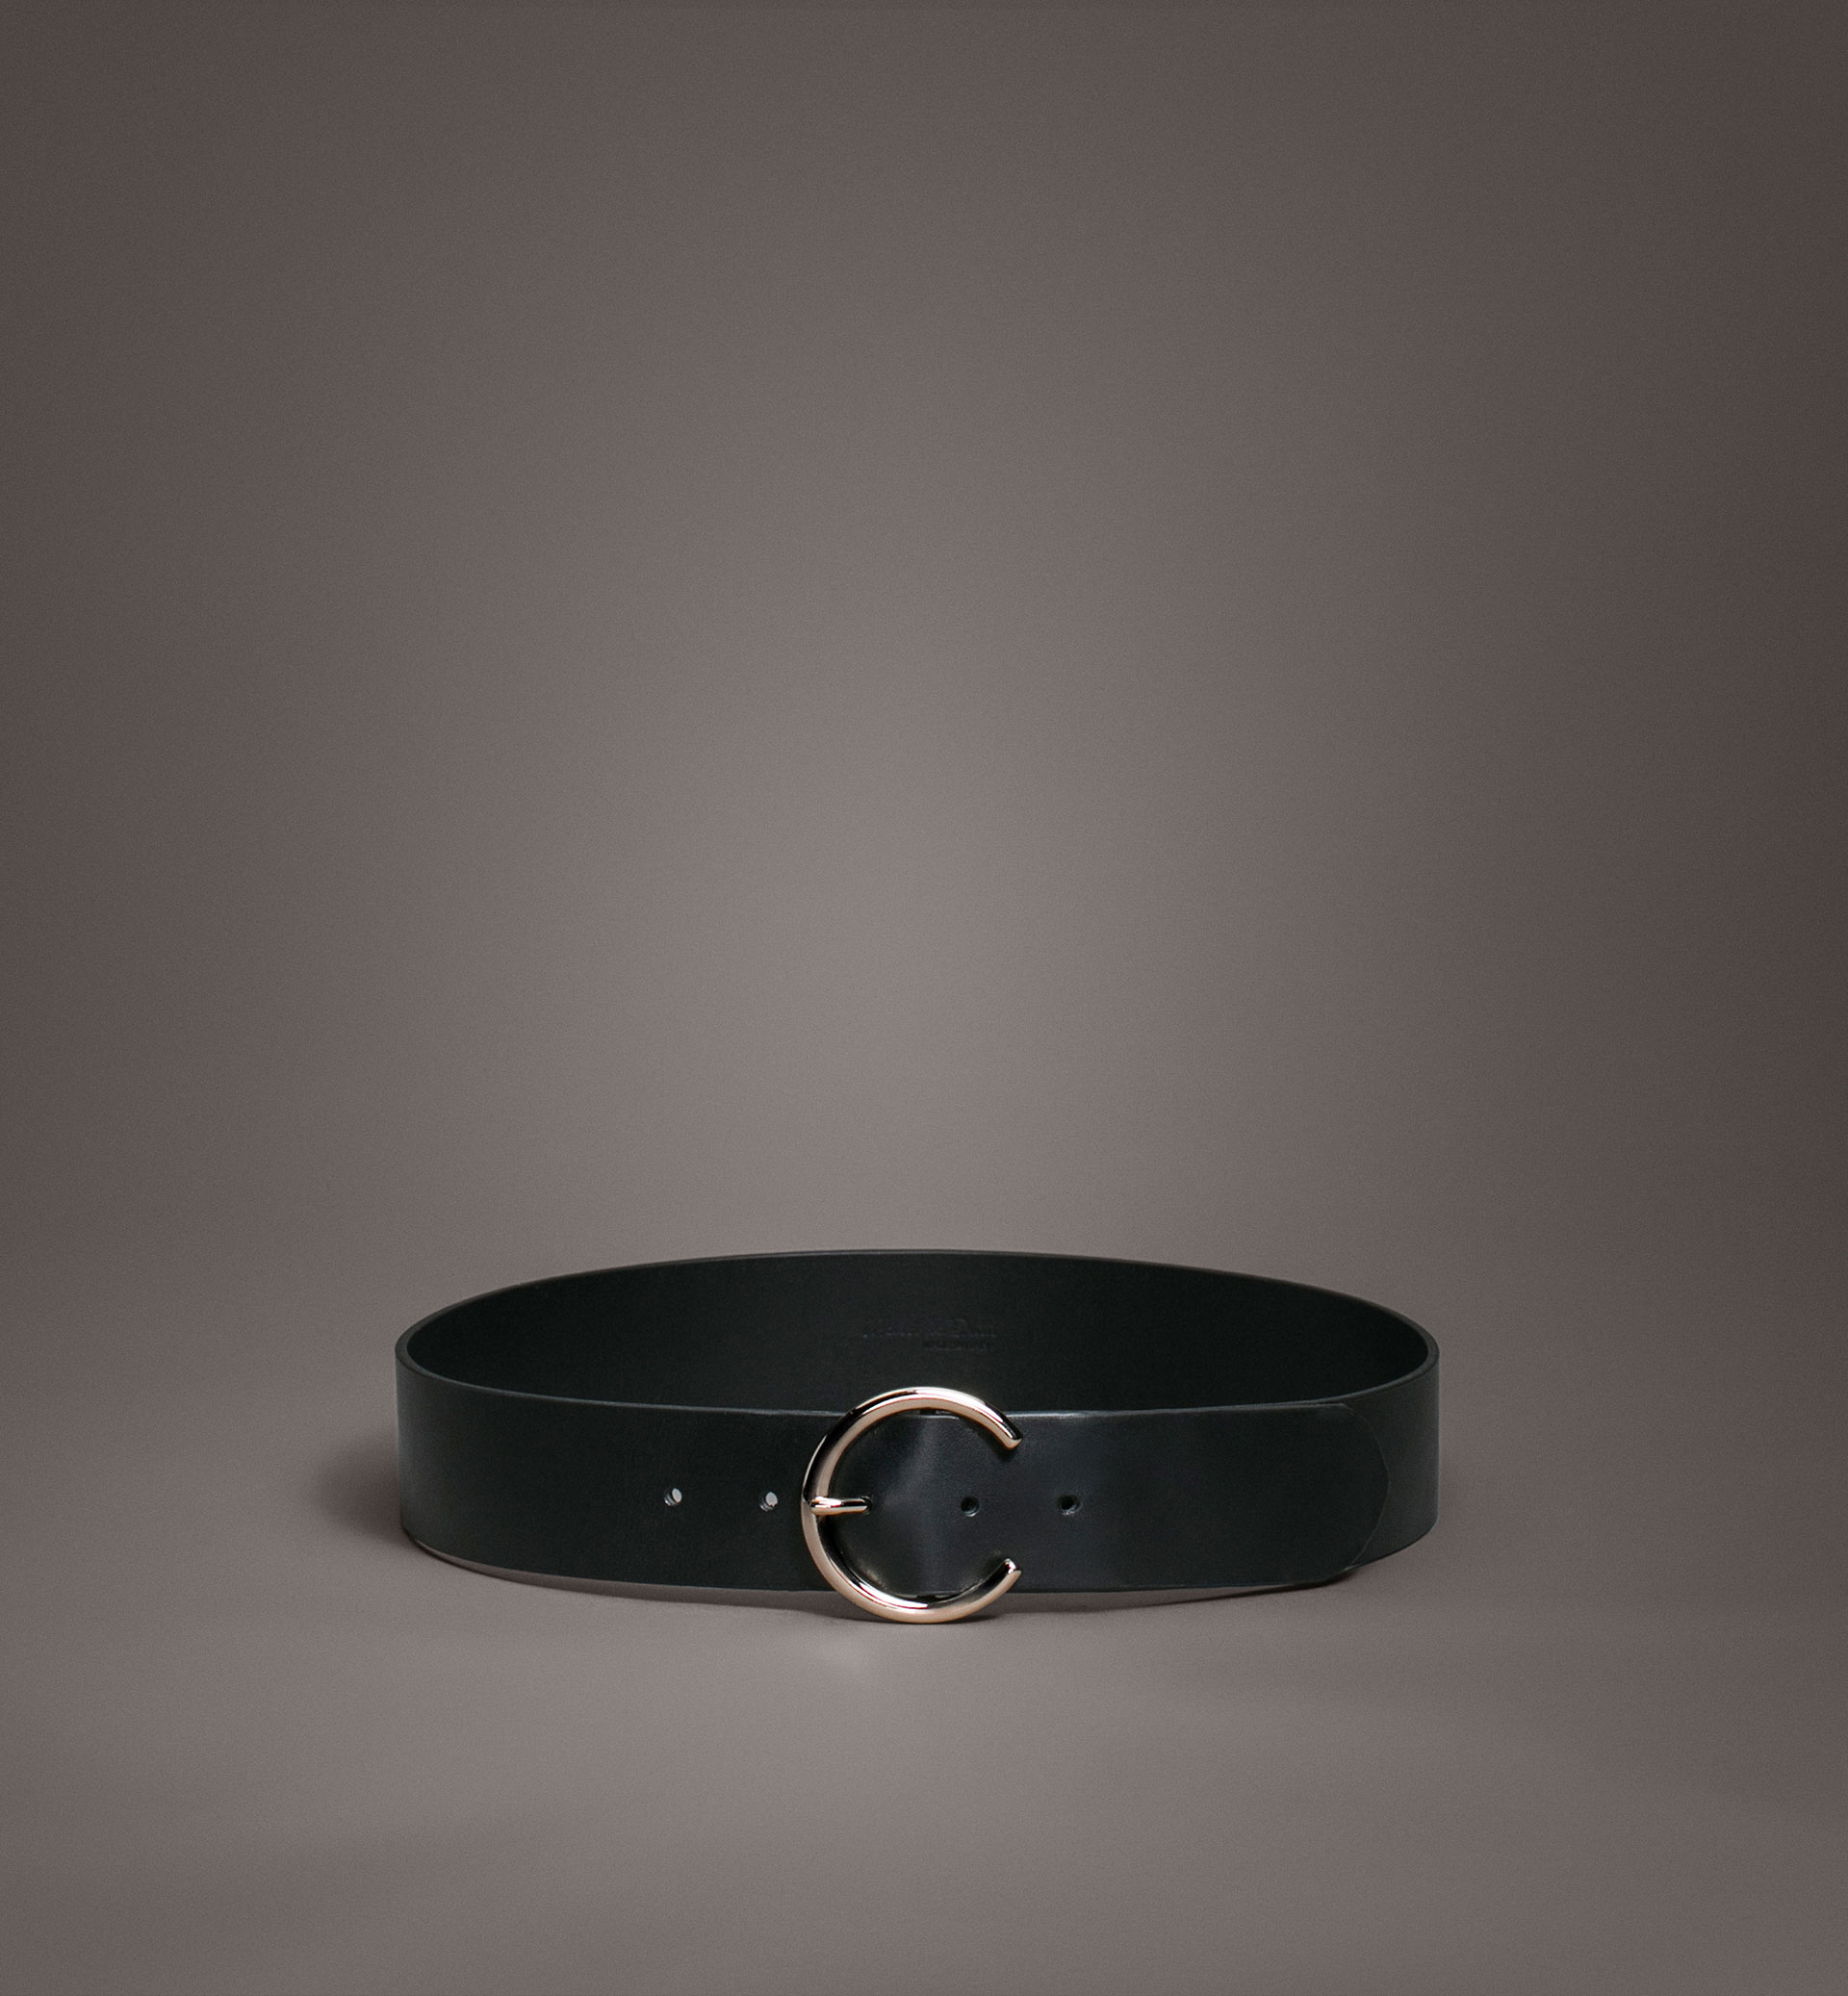 LIMITED EDITION WIDE BELT